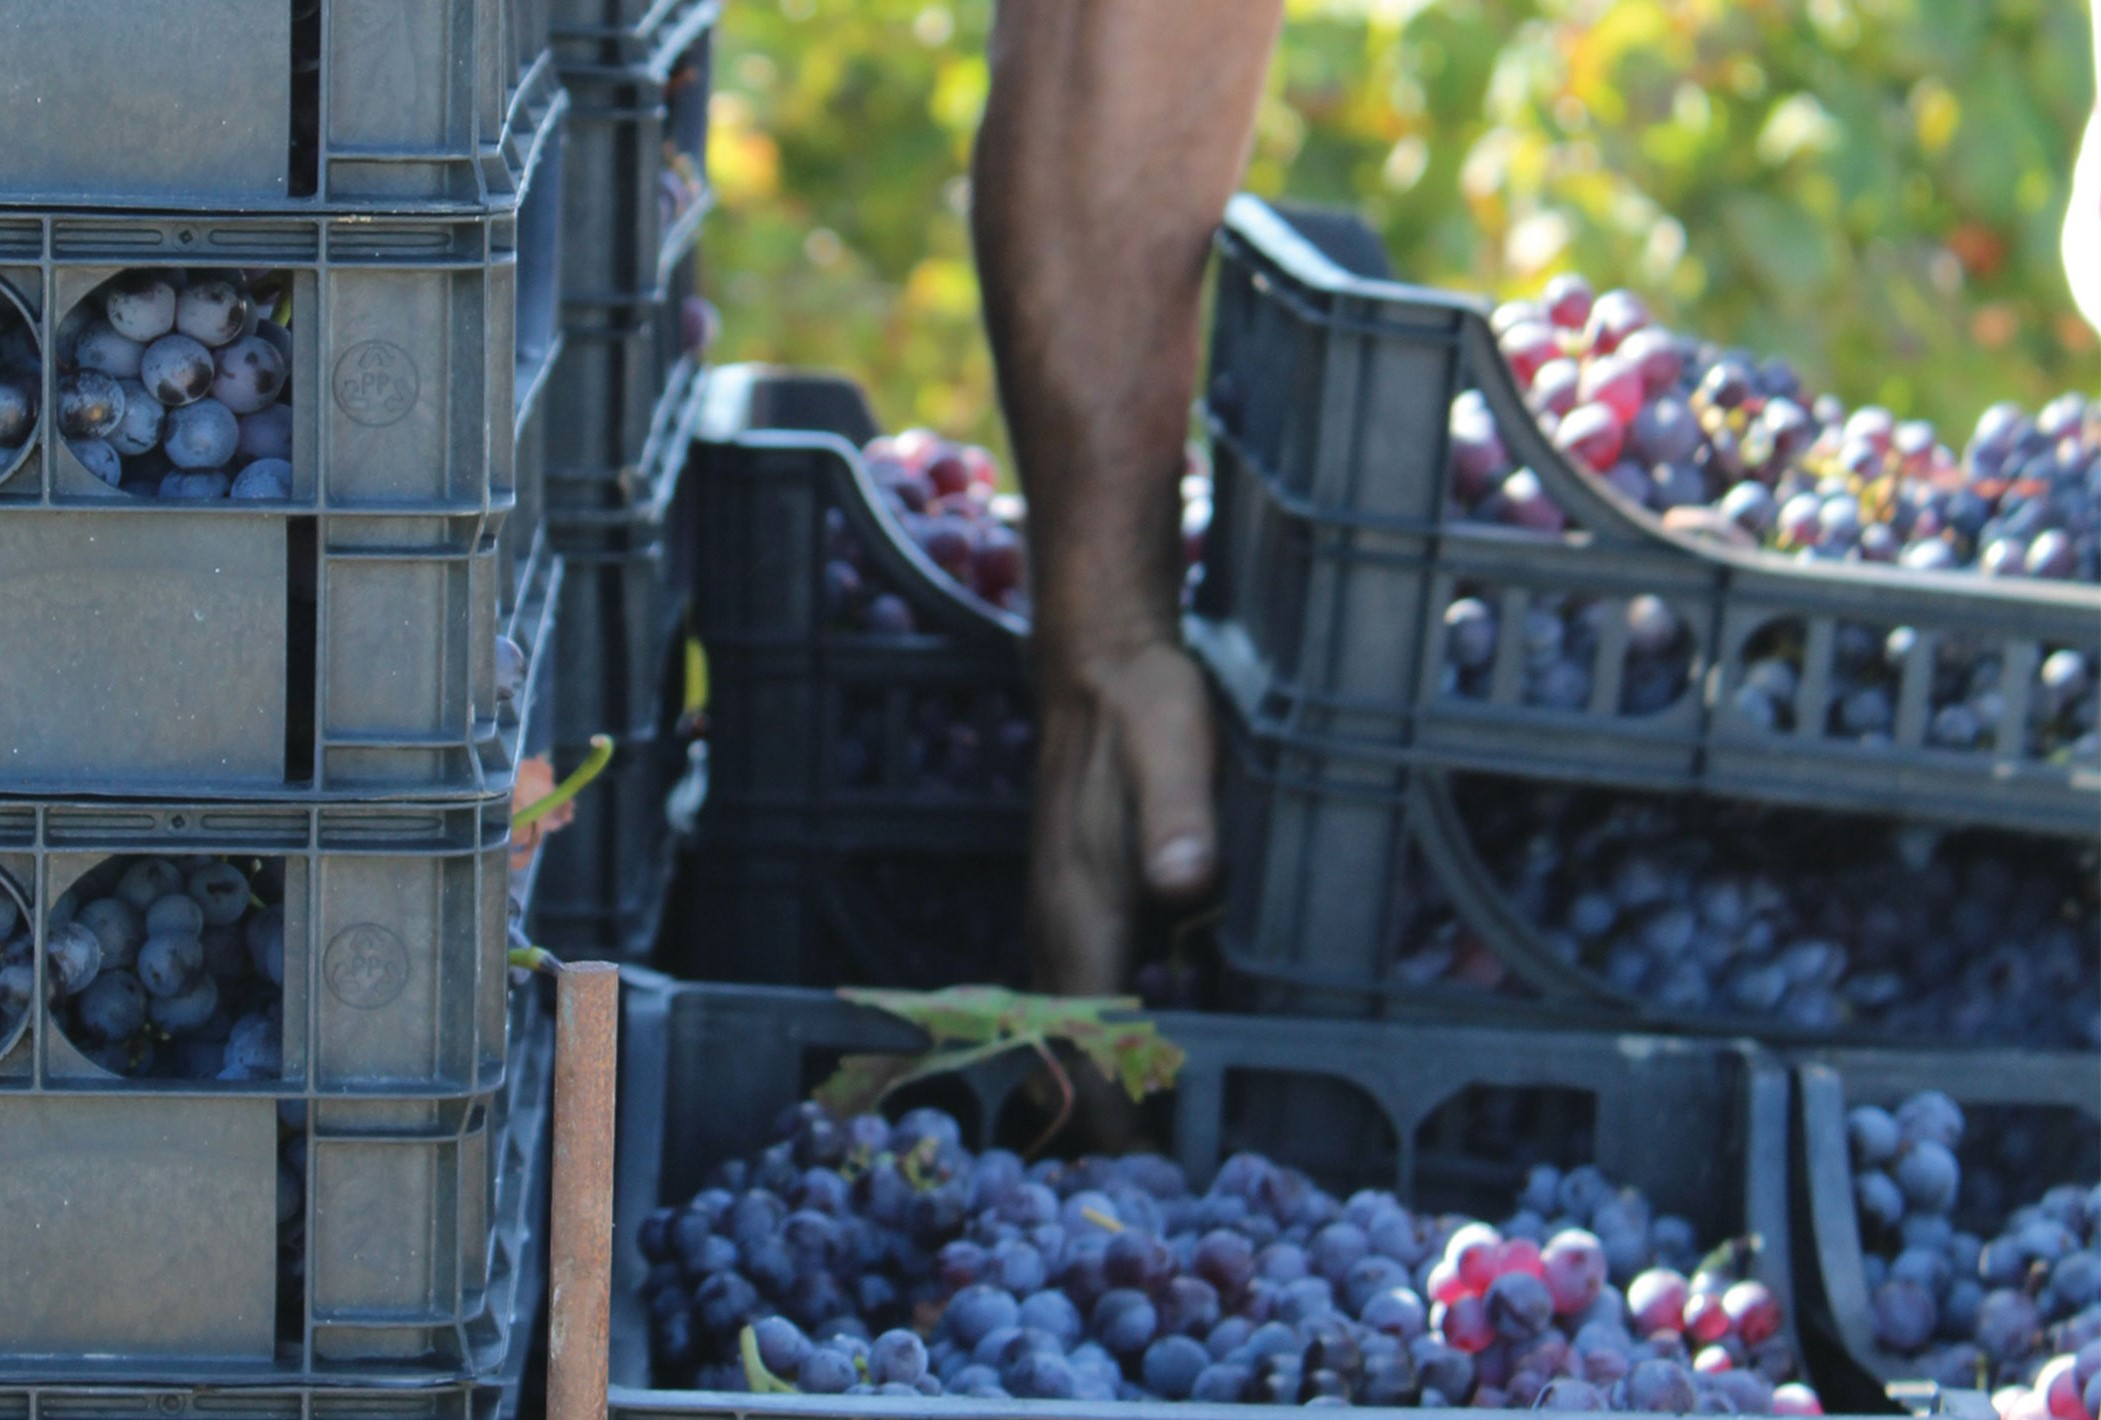 Region Focus: Calabria's Wines Ripe for Rediscovery